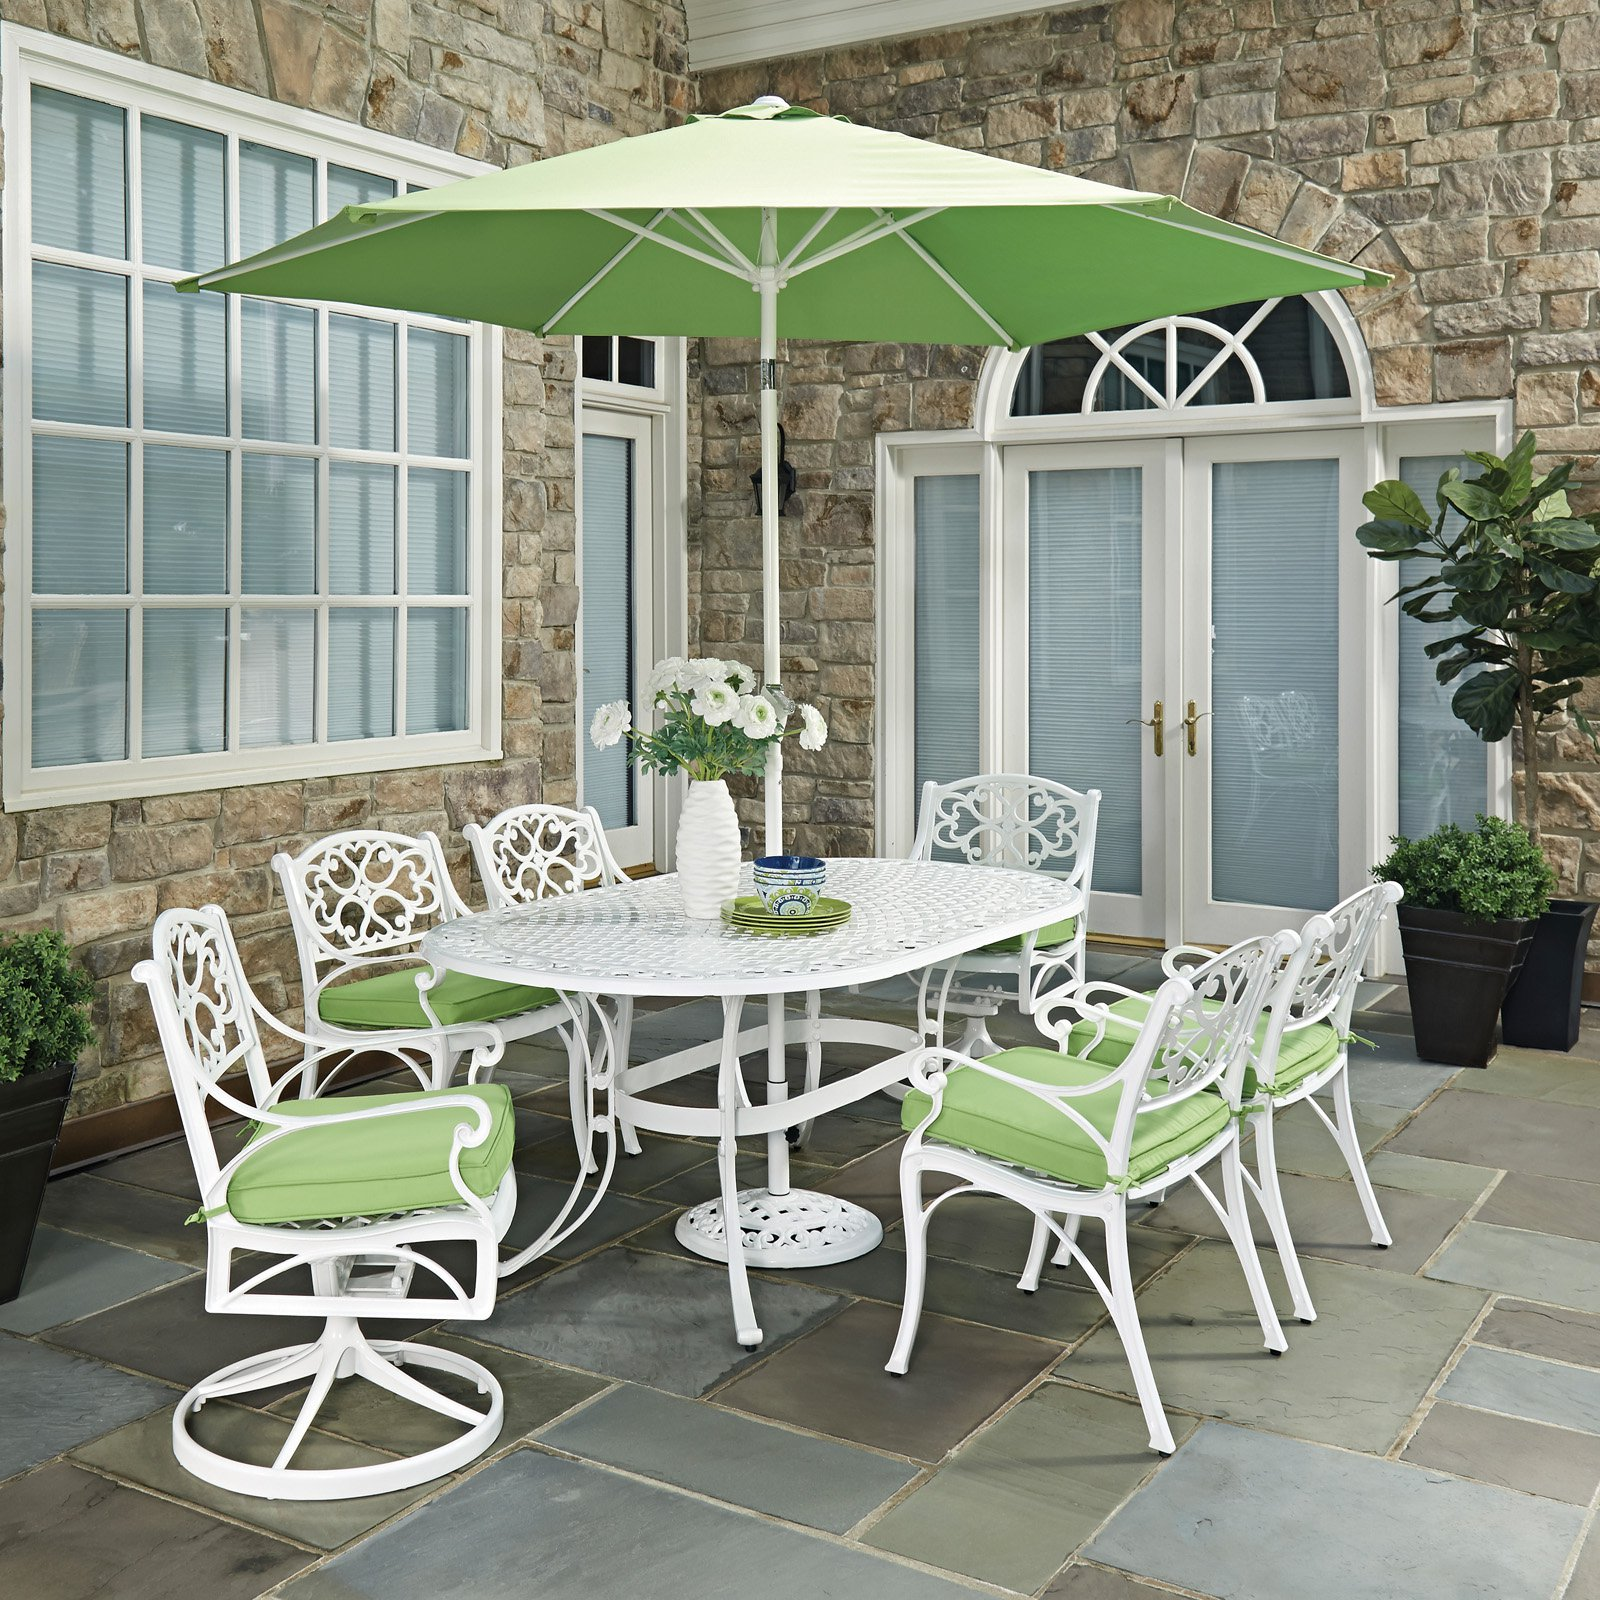 Biscayne White Oval 9 Pc Outdoor Dining Table 4 Arm Chairs 2